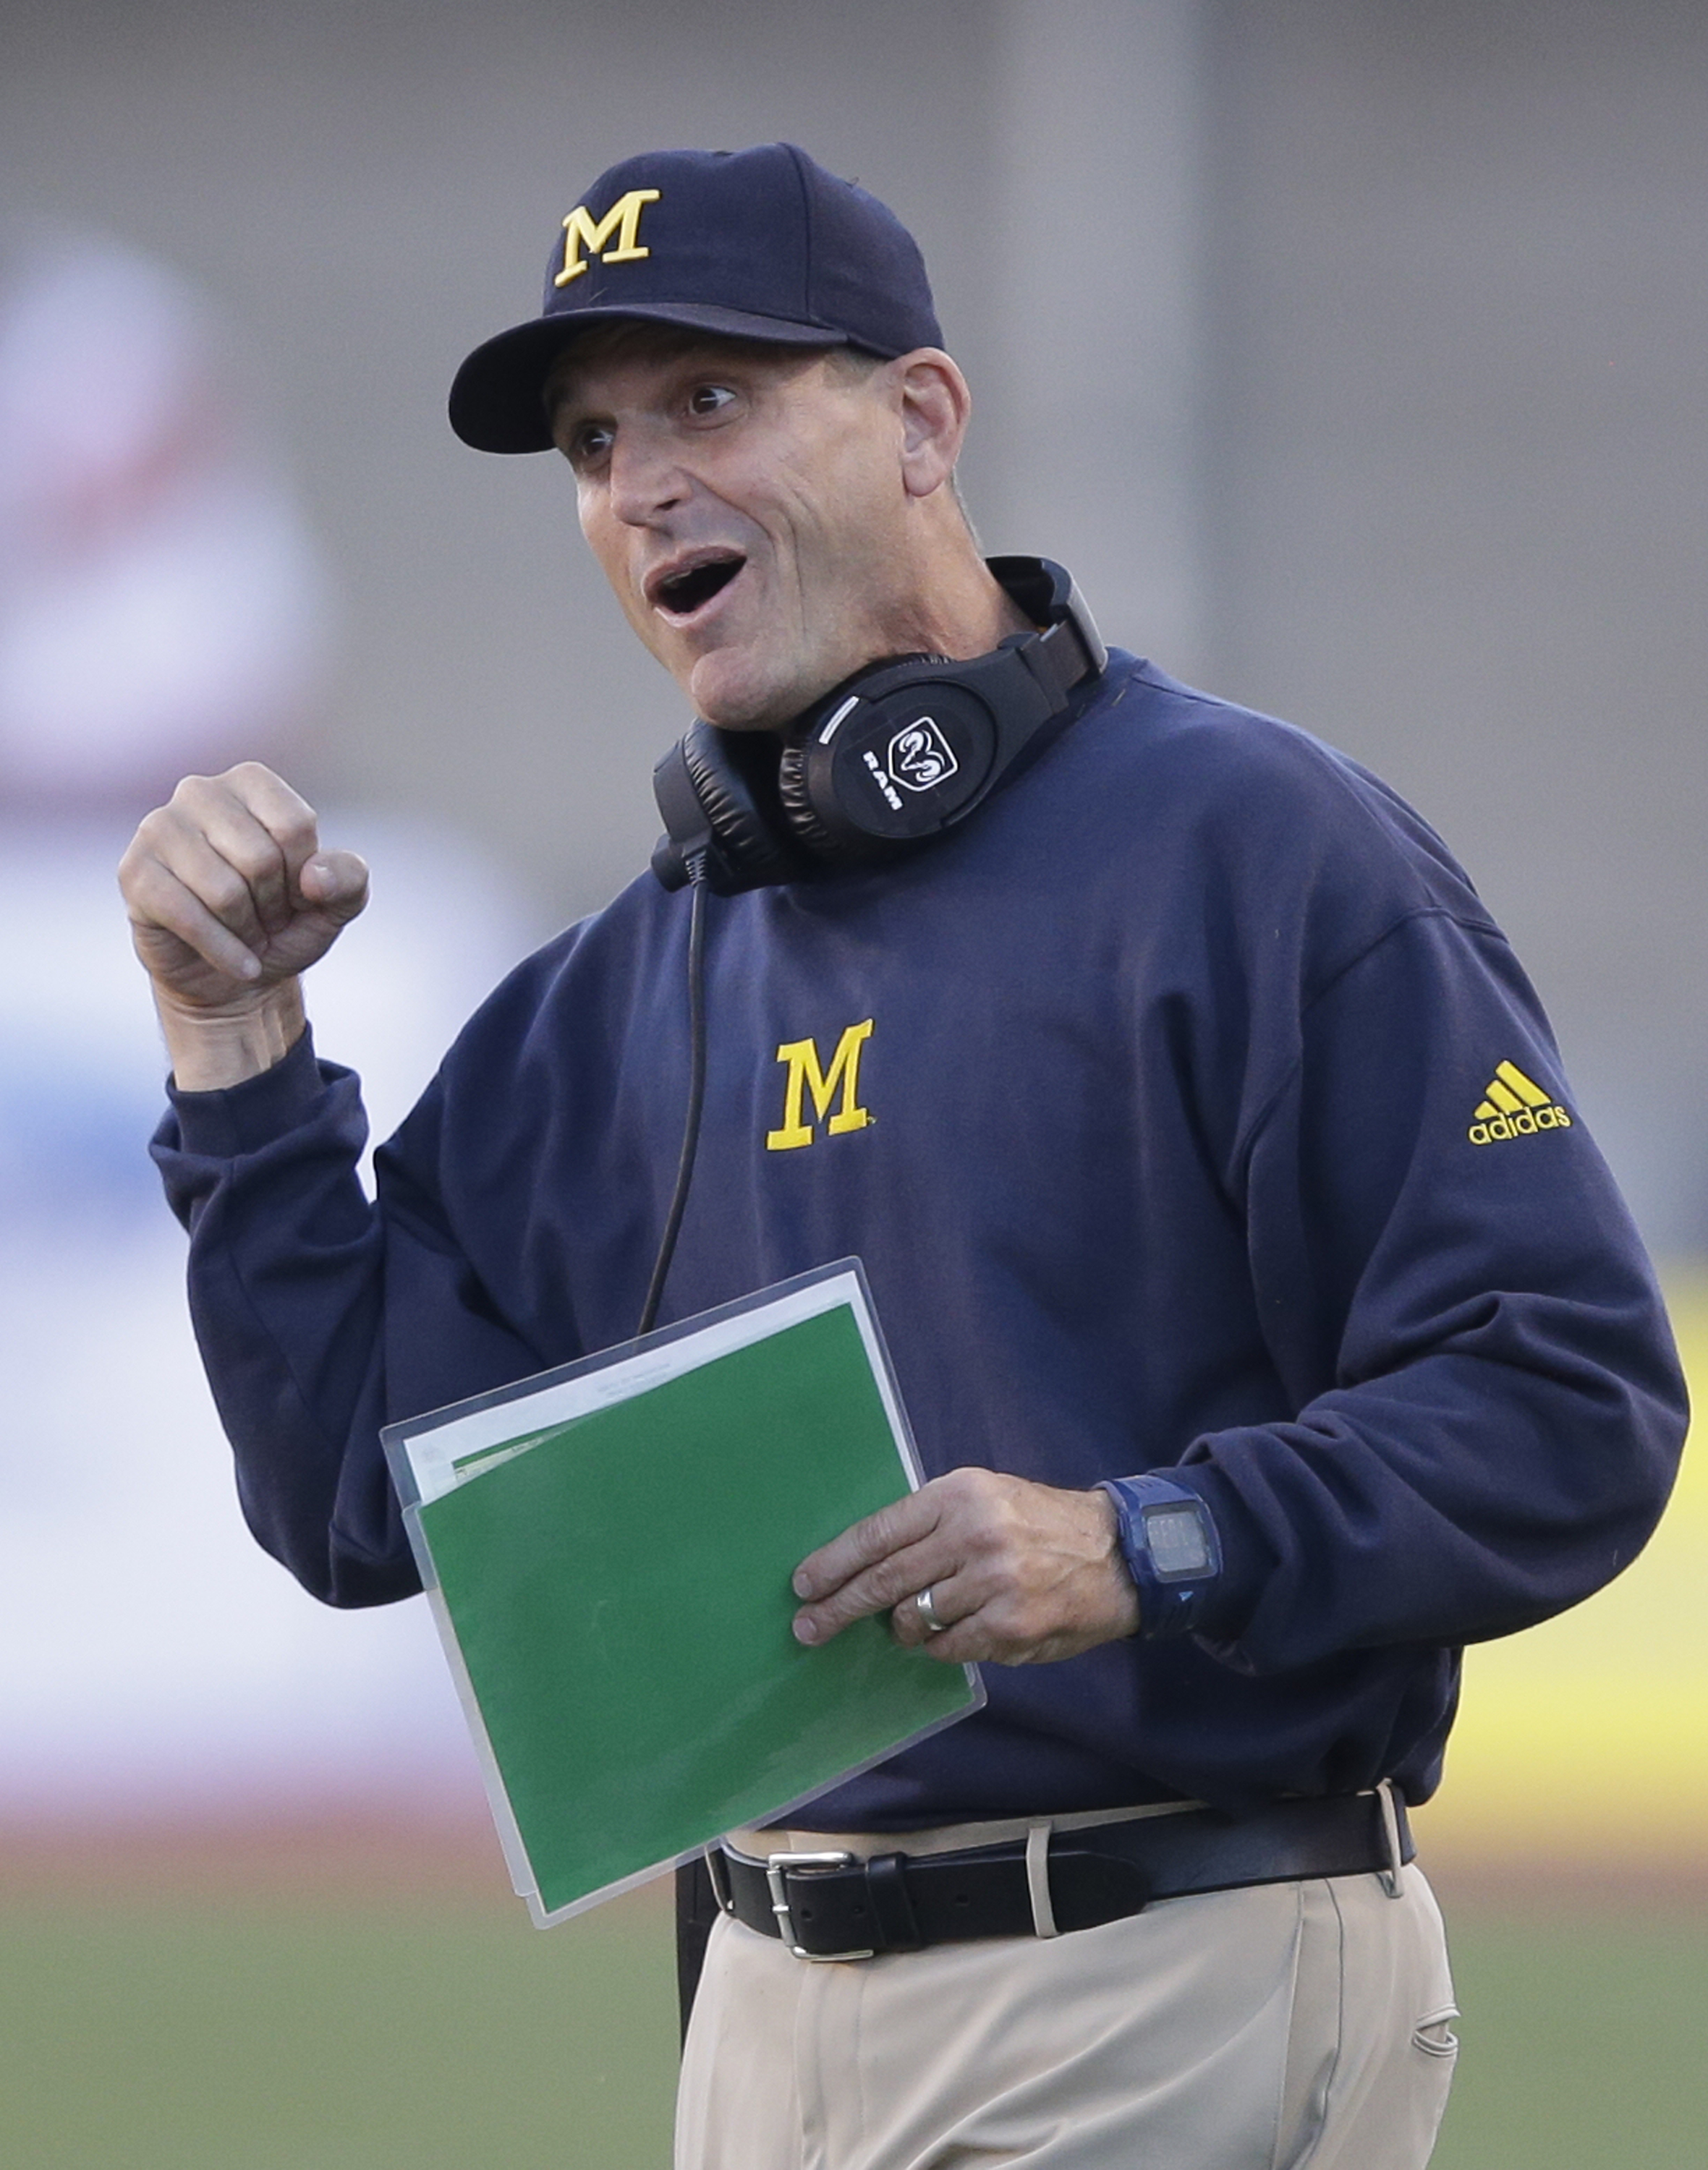 Michigan head coach Jim Harbaugh shouts to his team during the first quarter during an  NCAA college football game against Utah, Thursday, Sept. 3, 2015, in Salt Lake City. (AP Photo/Rick Bowmer)